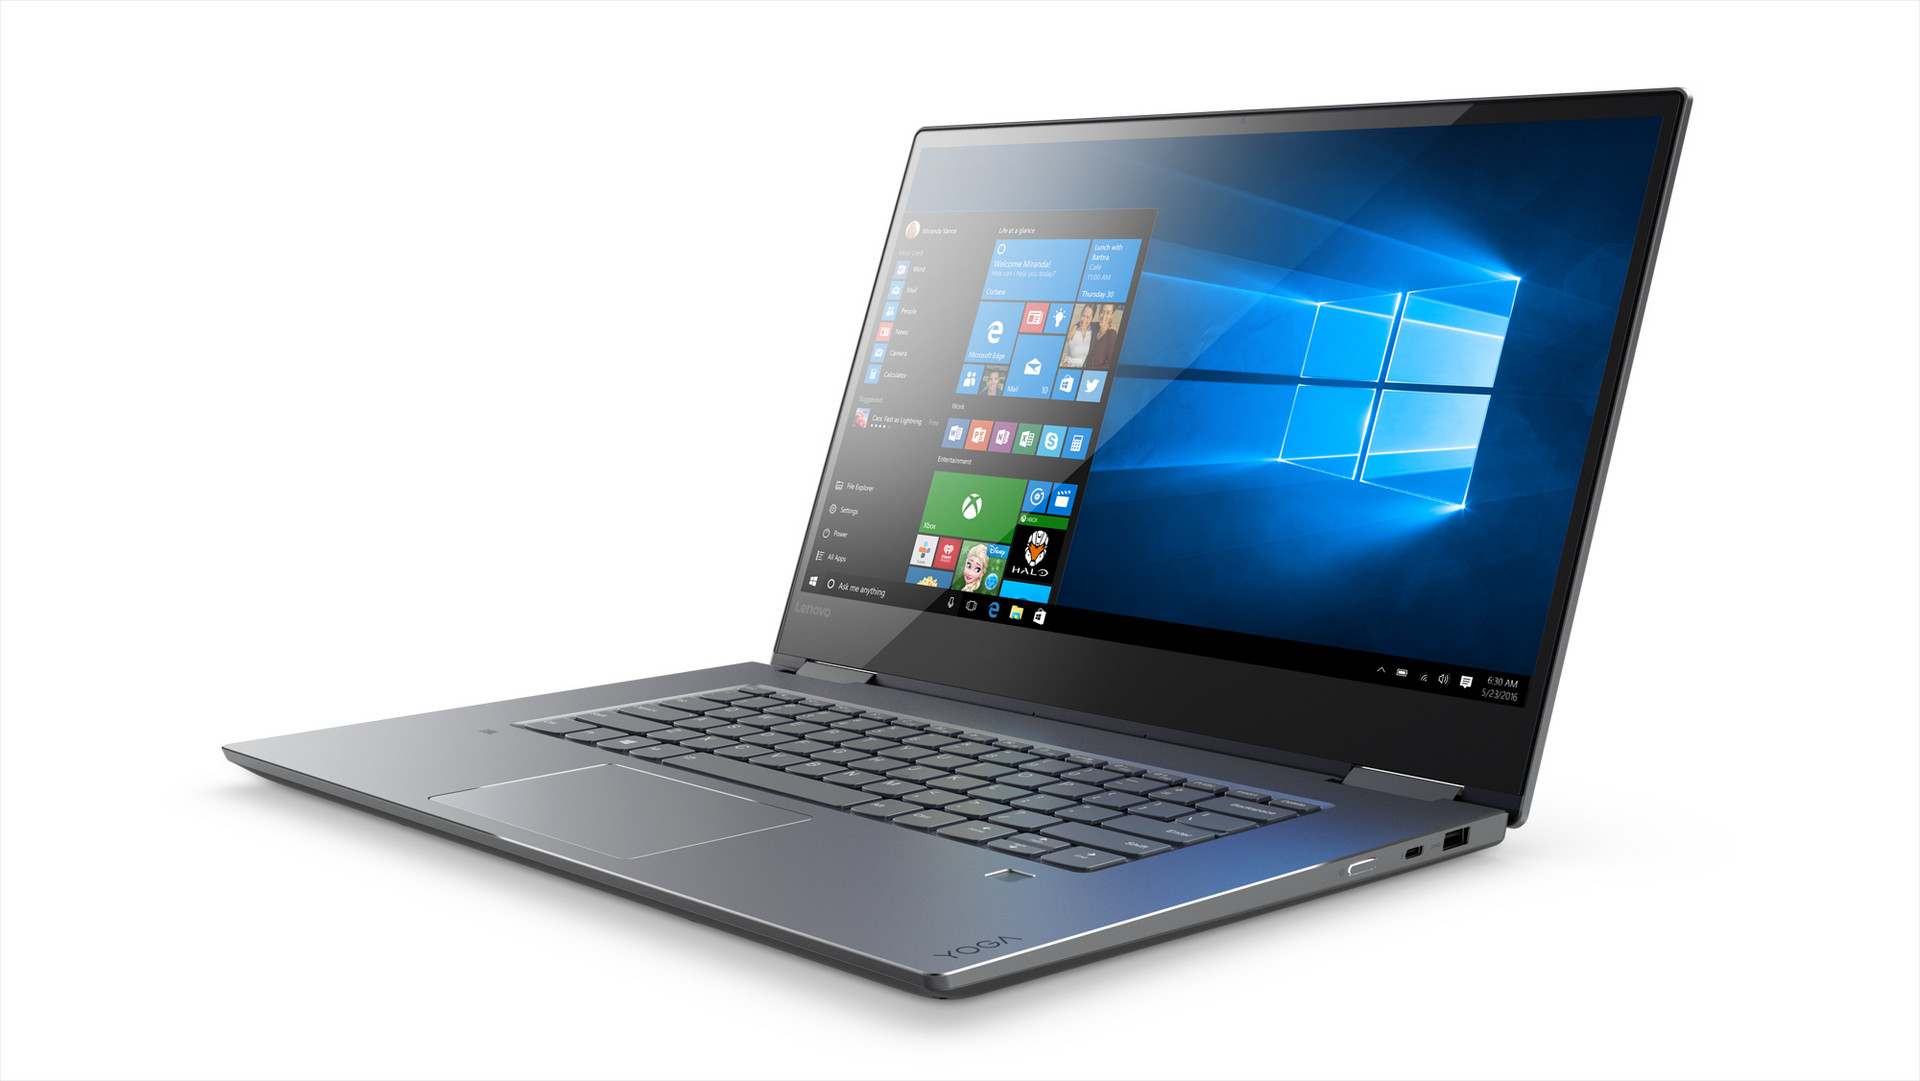 Lenovo Yoga 520 And Yoga 720 Convertible Notebooks Now